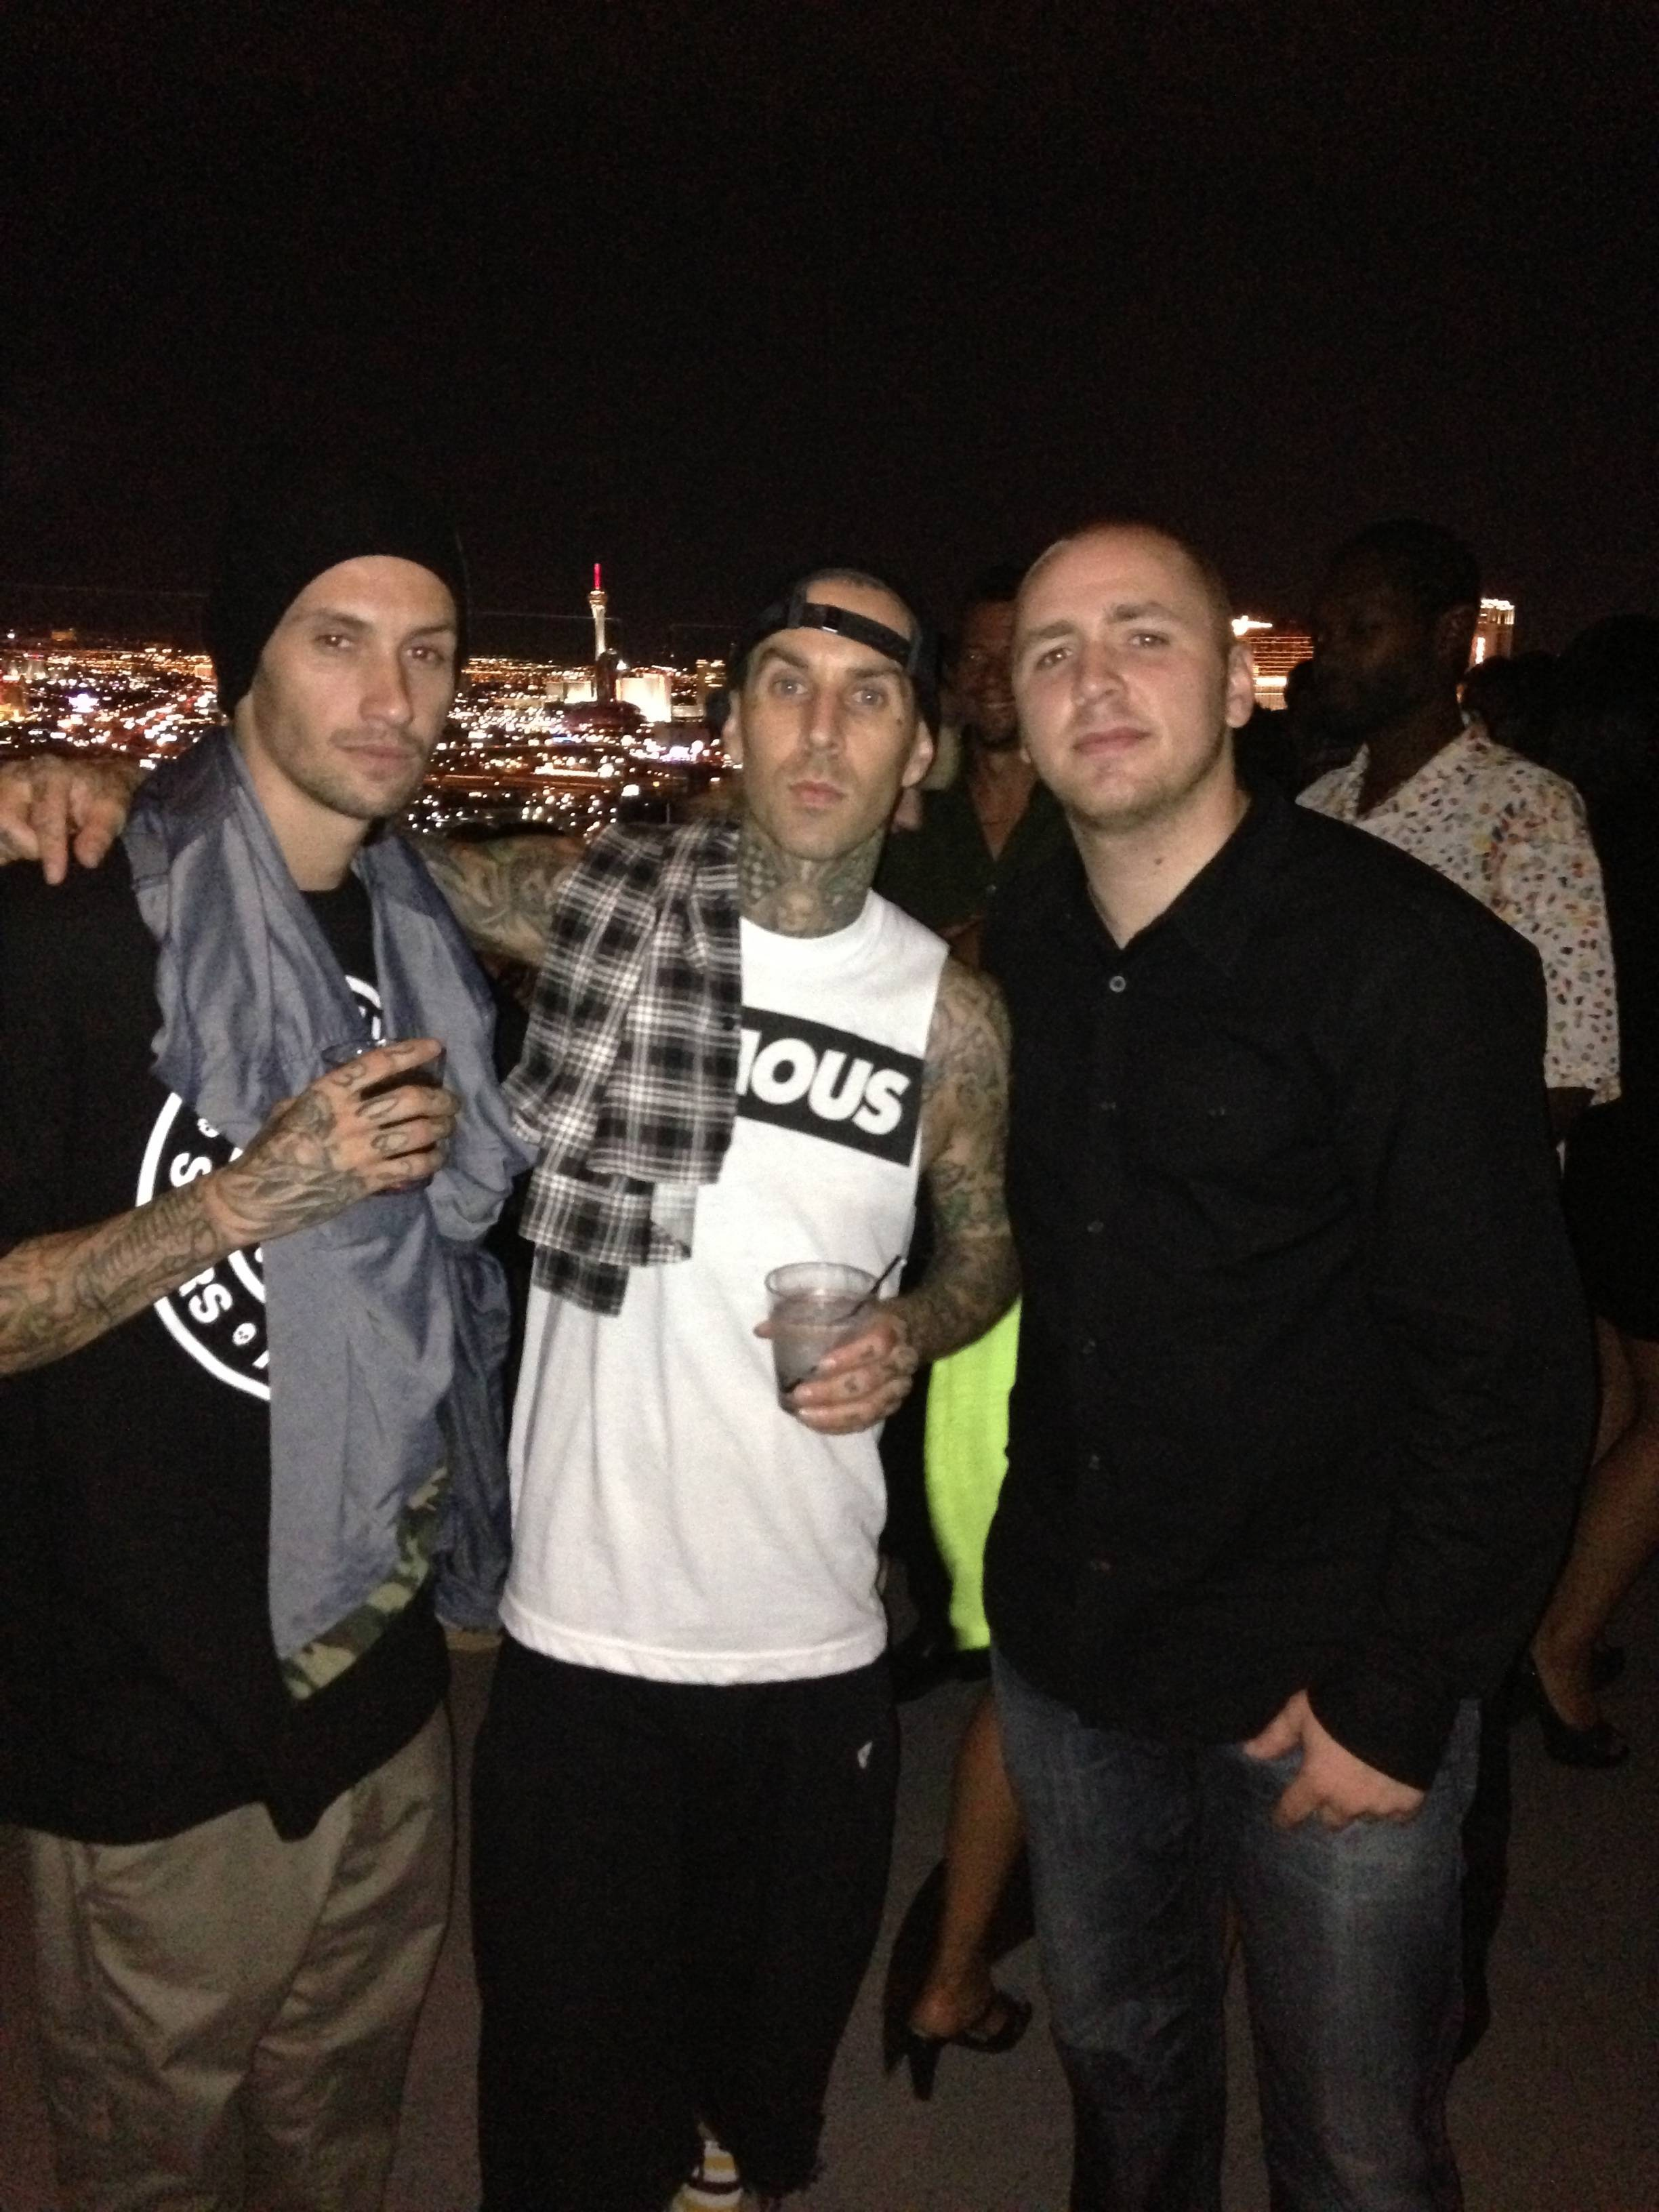 Travis Barker enjoys view of famed Las Vegas Strip below from Ghostbar's patio. Photo: 9Group